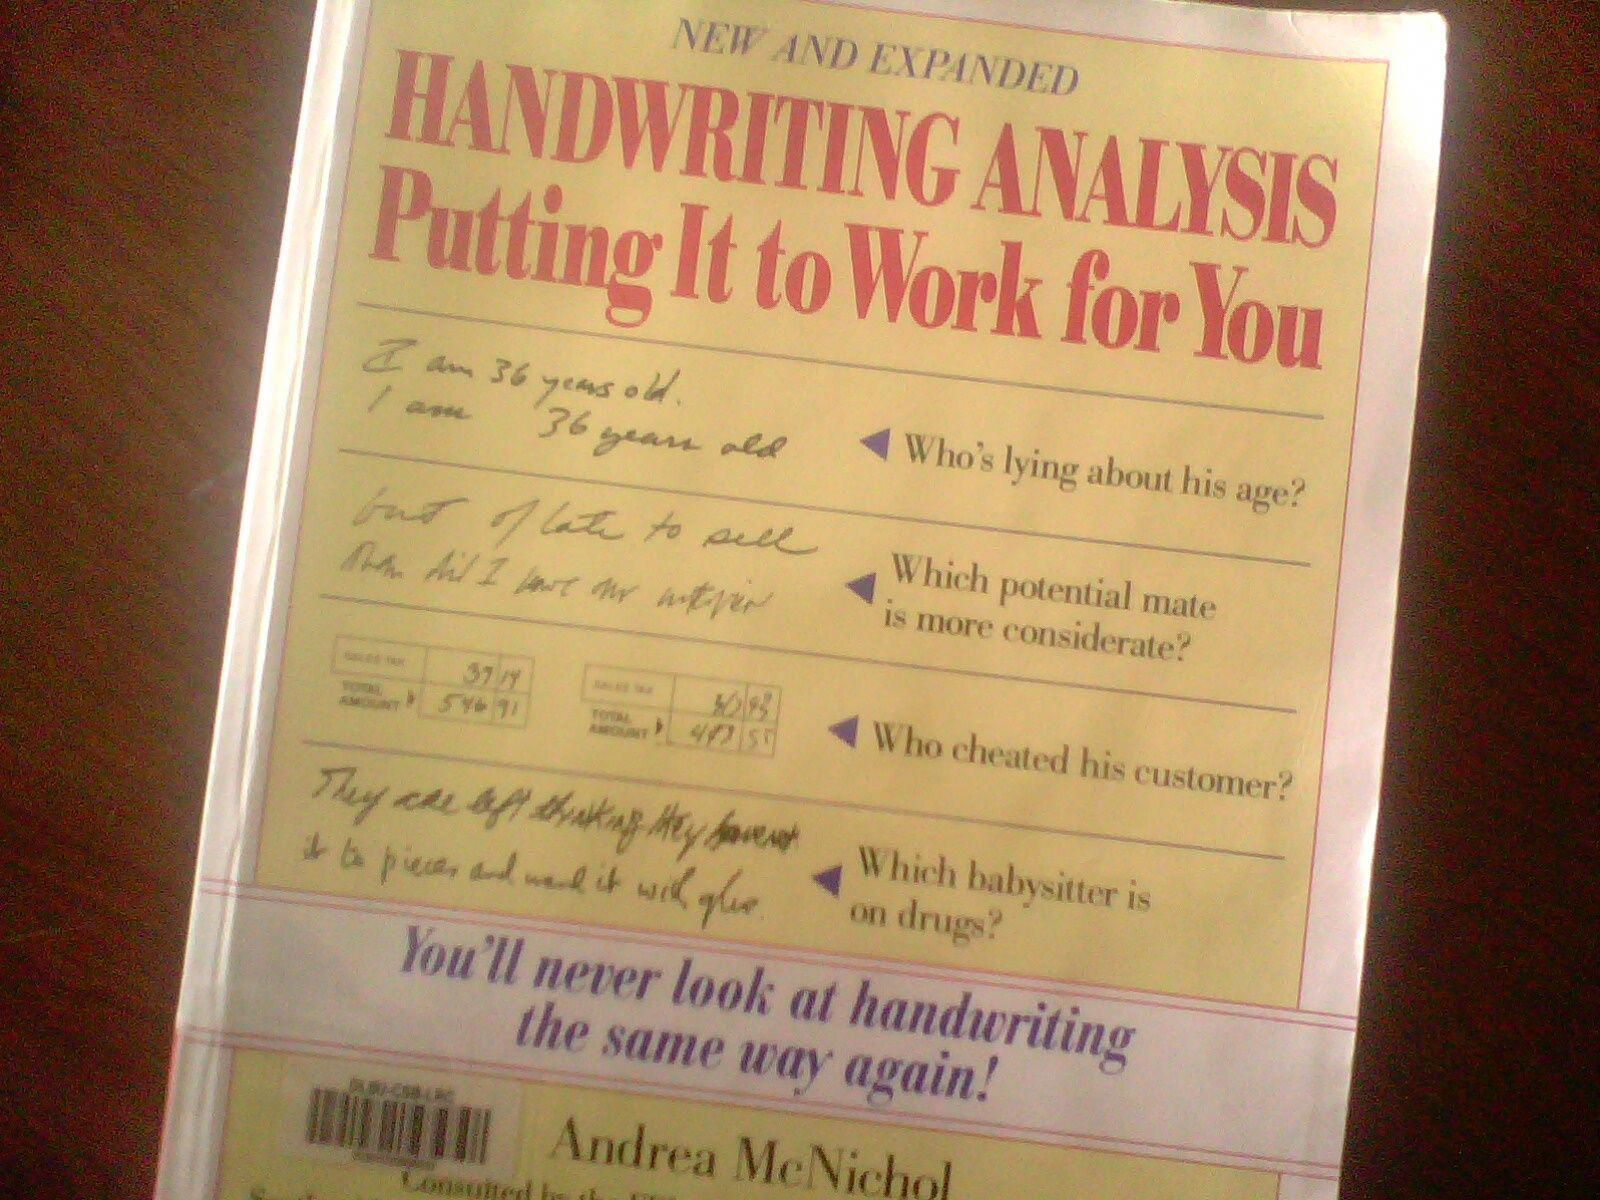 If You Re Into Graphology This Is Probably The Best Book I Ve Read On The Topic Why Yes I Do Spend A Lot Of Time S Handwriting Analysis Analysis Handwriting